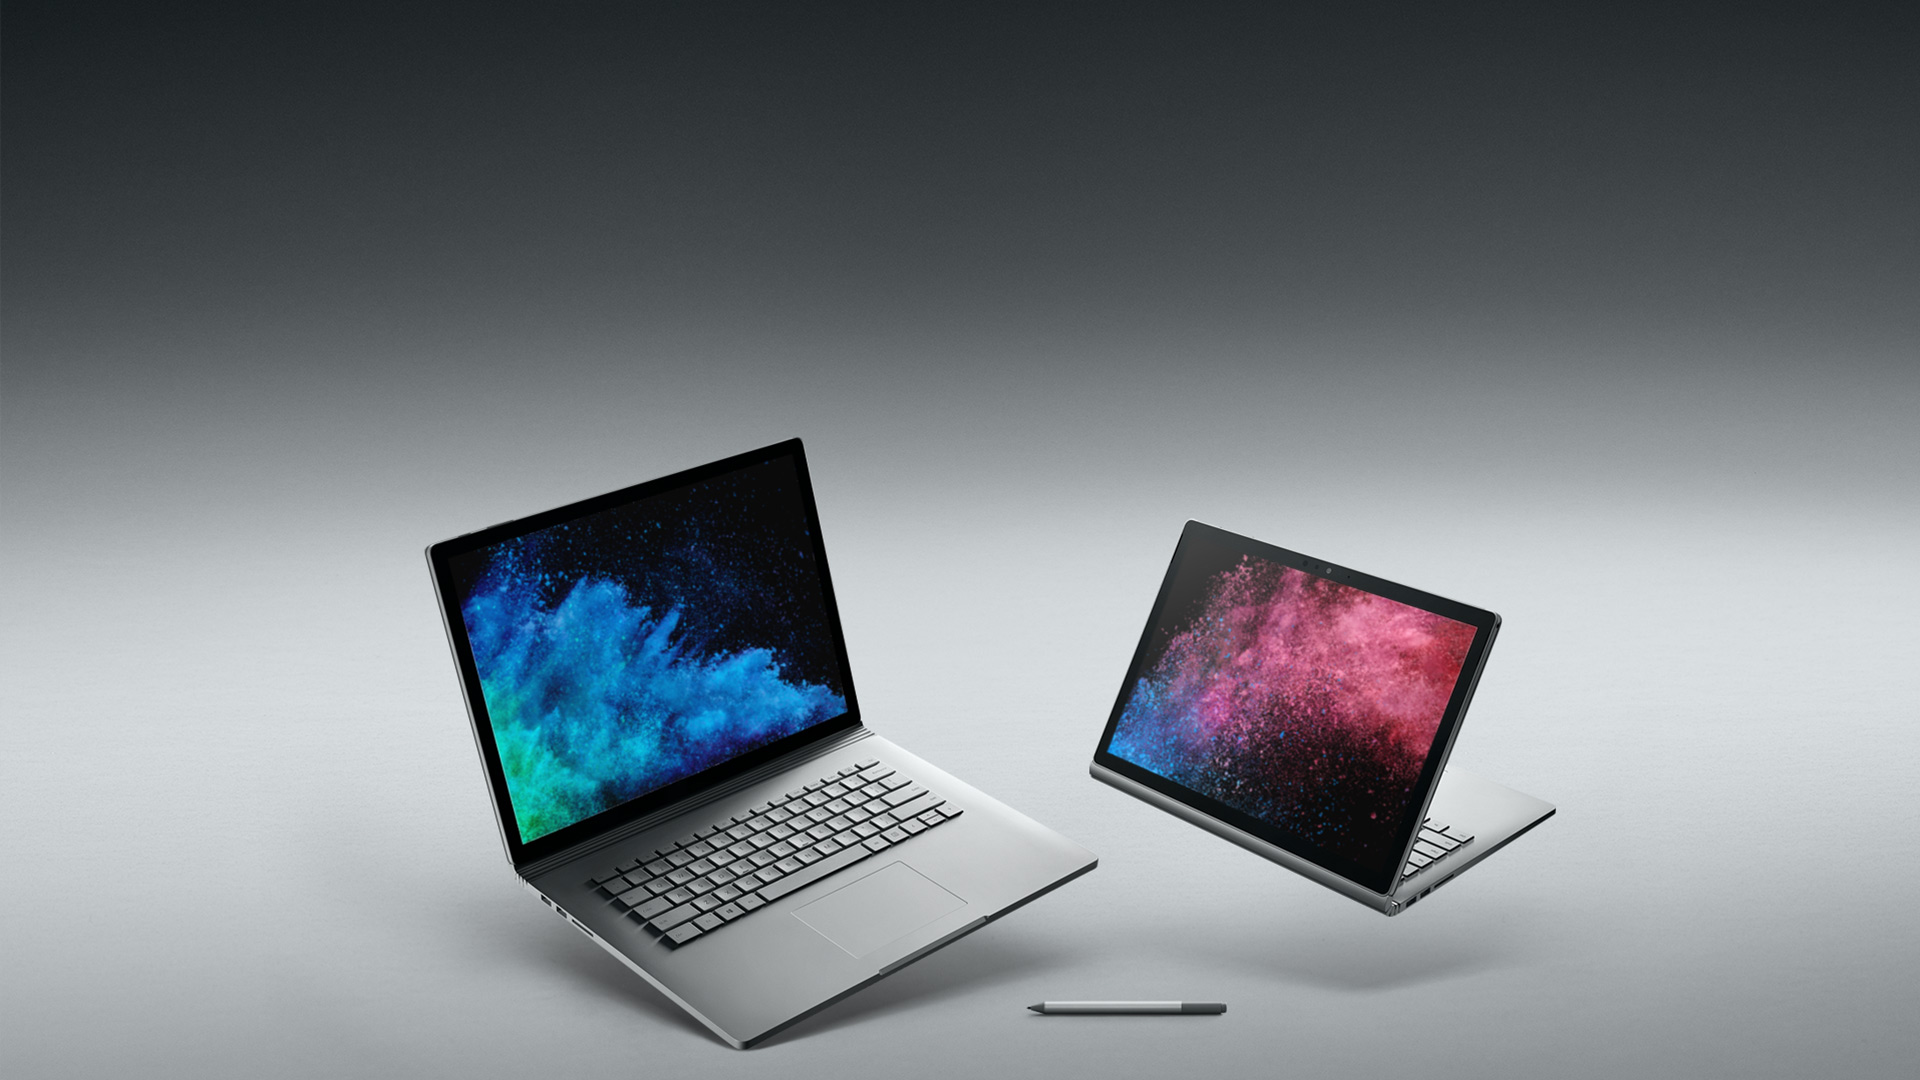 جهاز Surface Book 2 بحجم 15 بوصة، وجهاز Surface Book 2